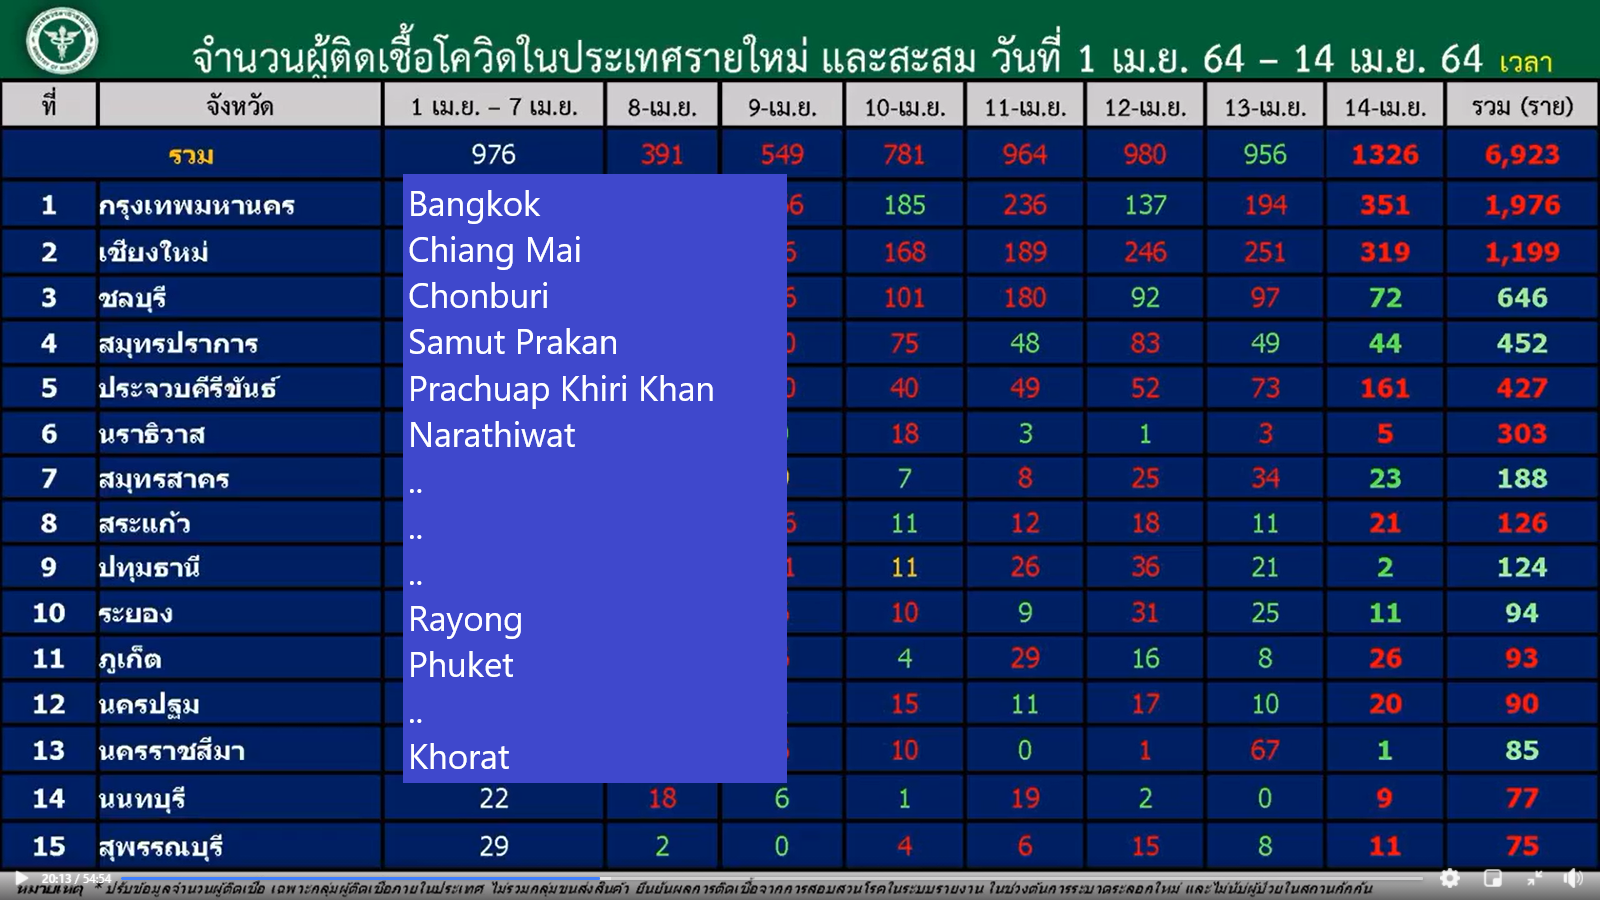 www.thaiguide.dk/images/forum/covid19/provinser%20smittede%2014-04-21.png